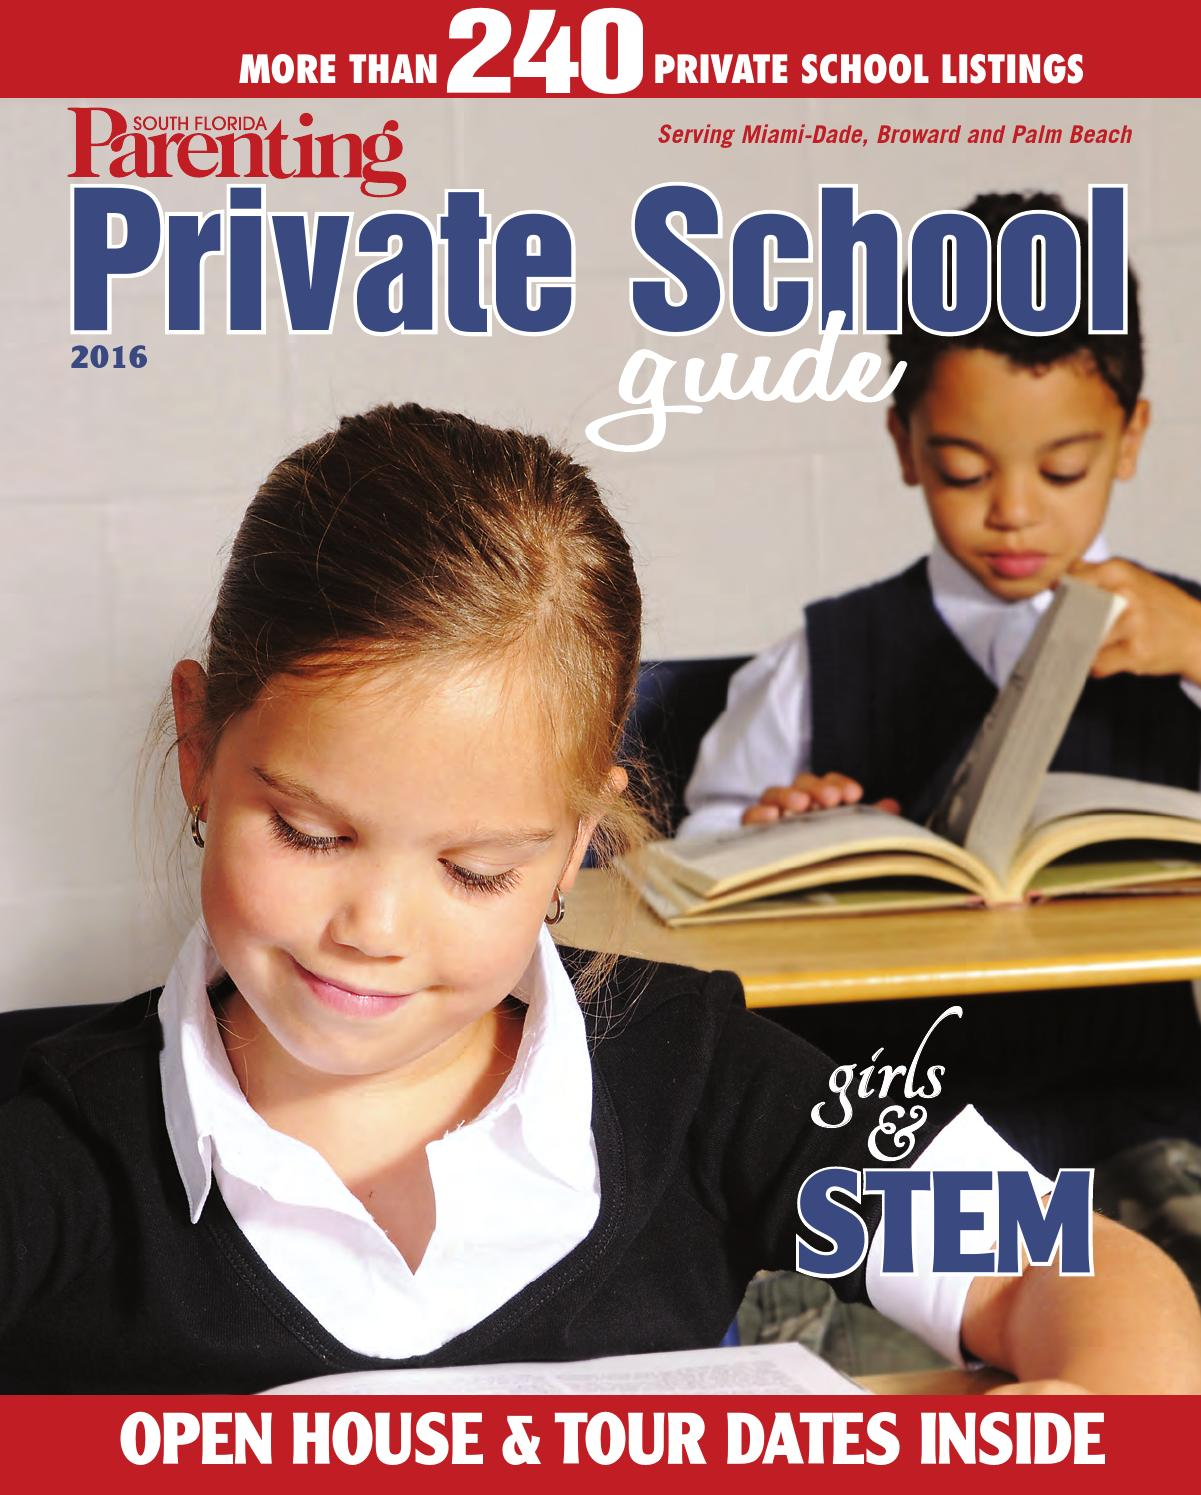 Stem School Tours: South Florida Parenting Private School Guide By Forum